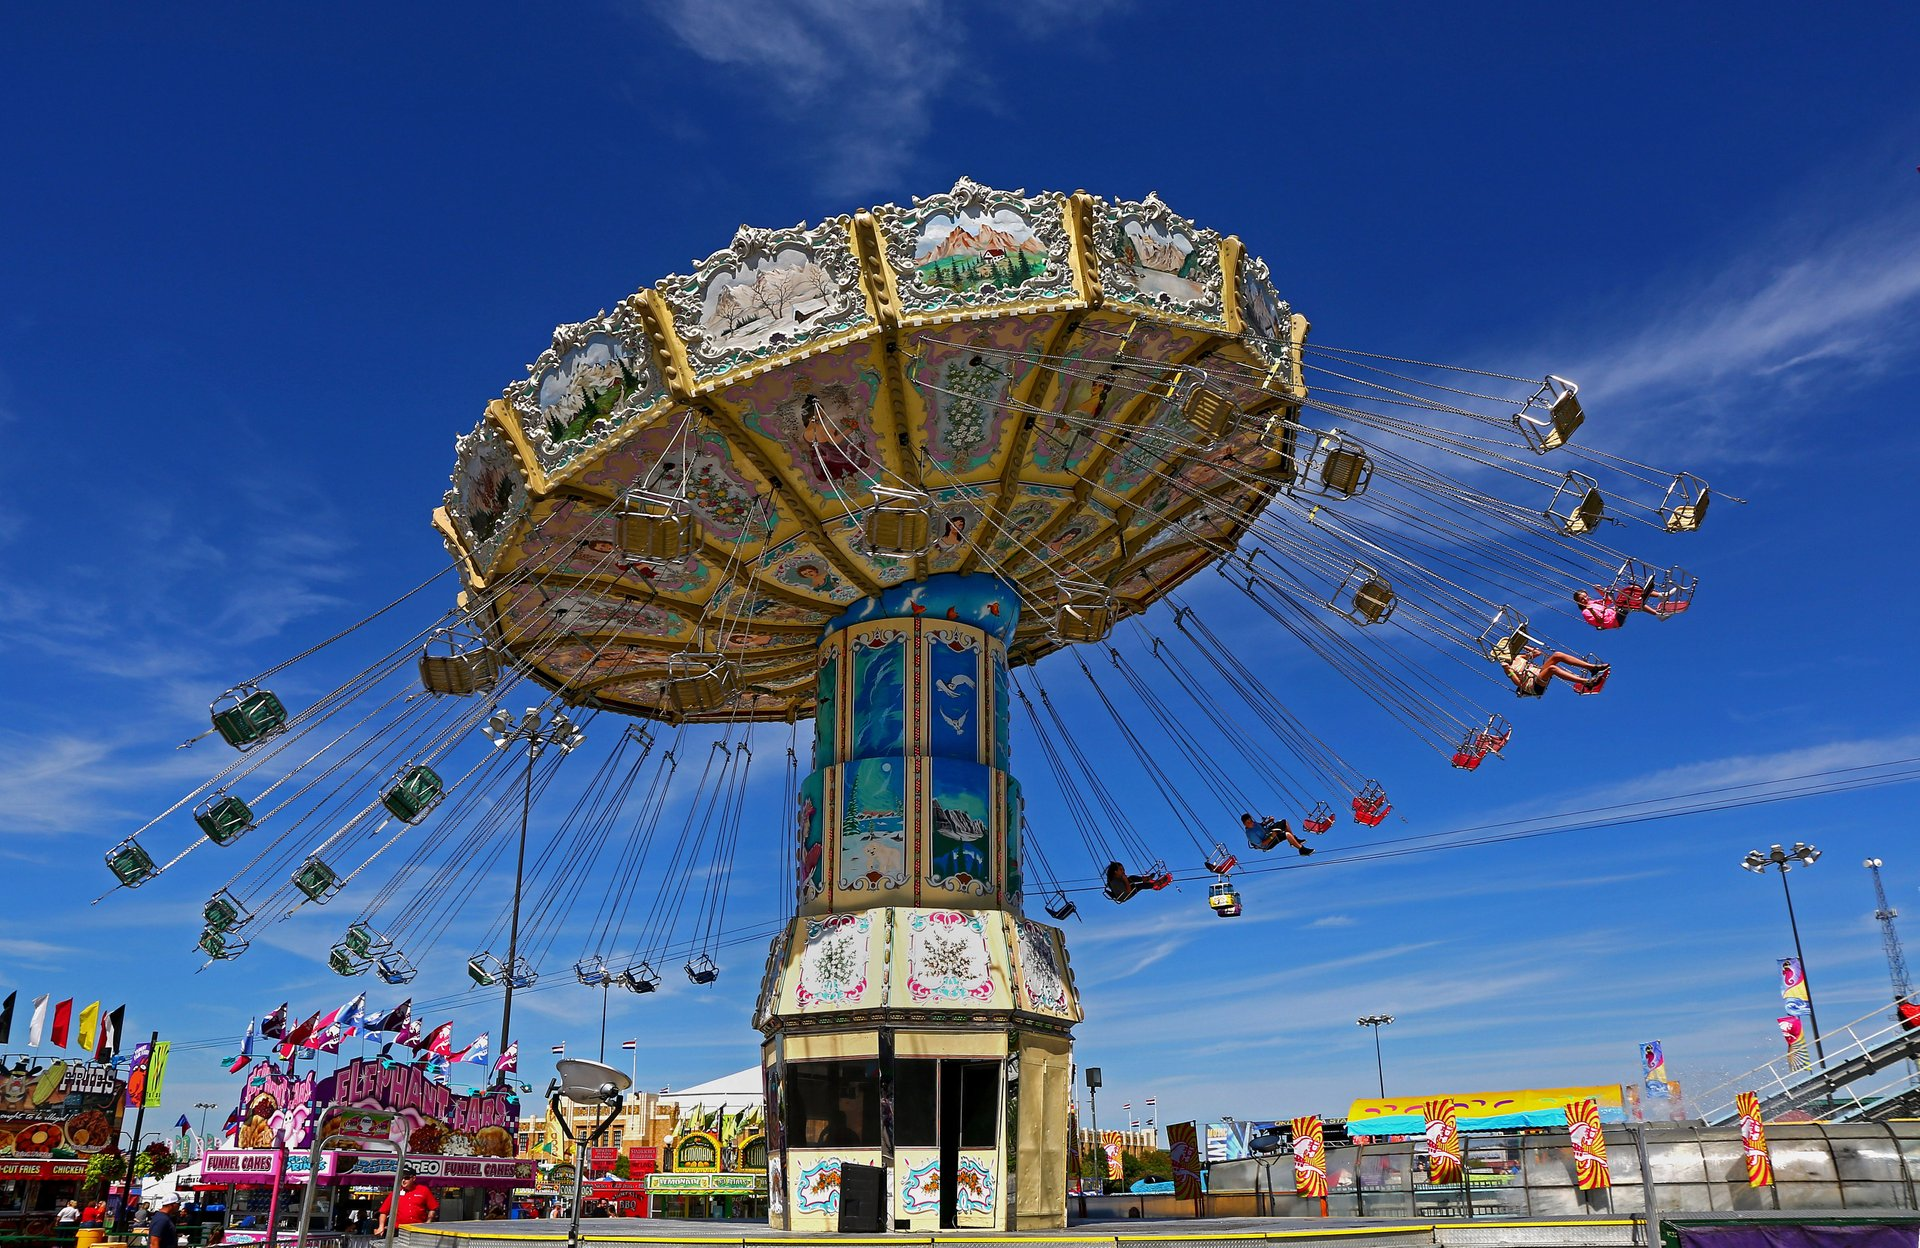 Tulsa State Fair in Oklahoma 2020 - Best Time